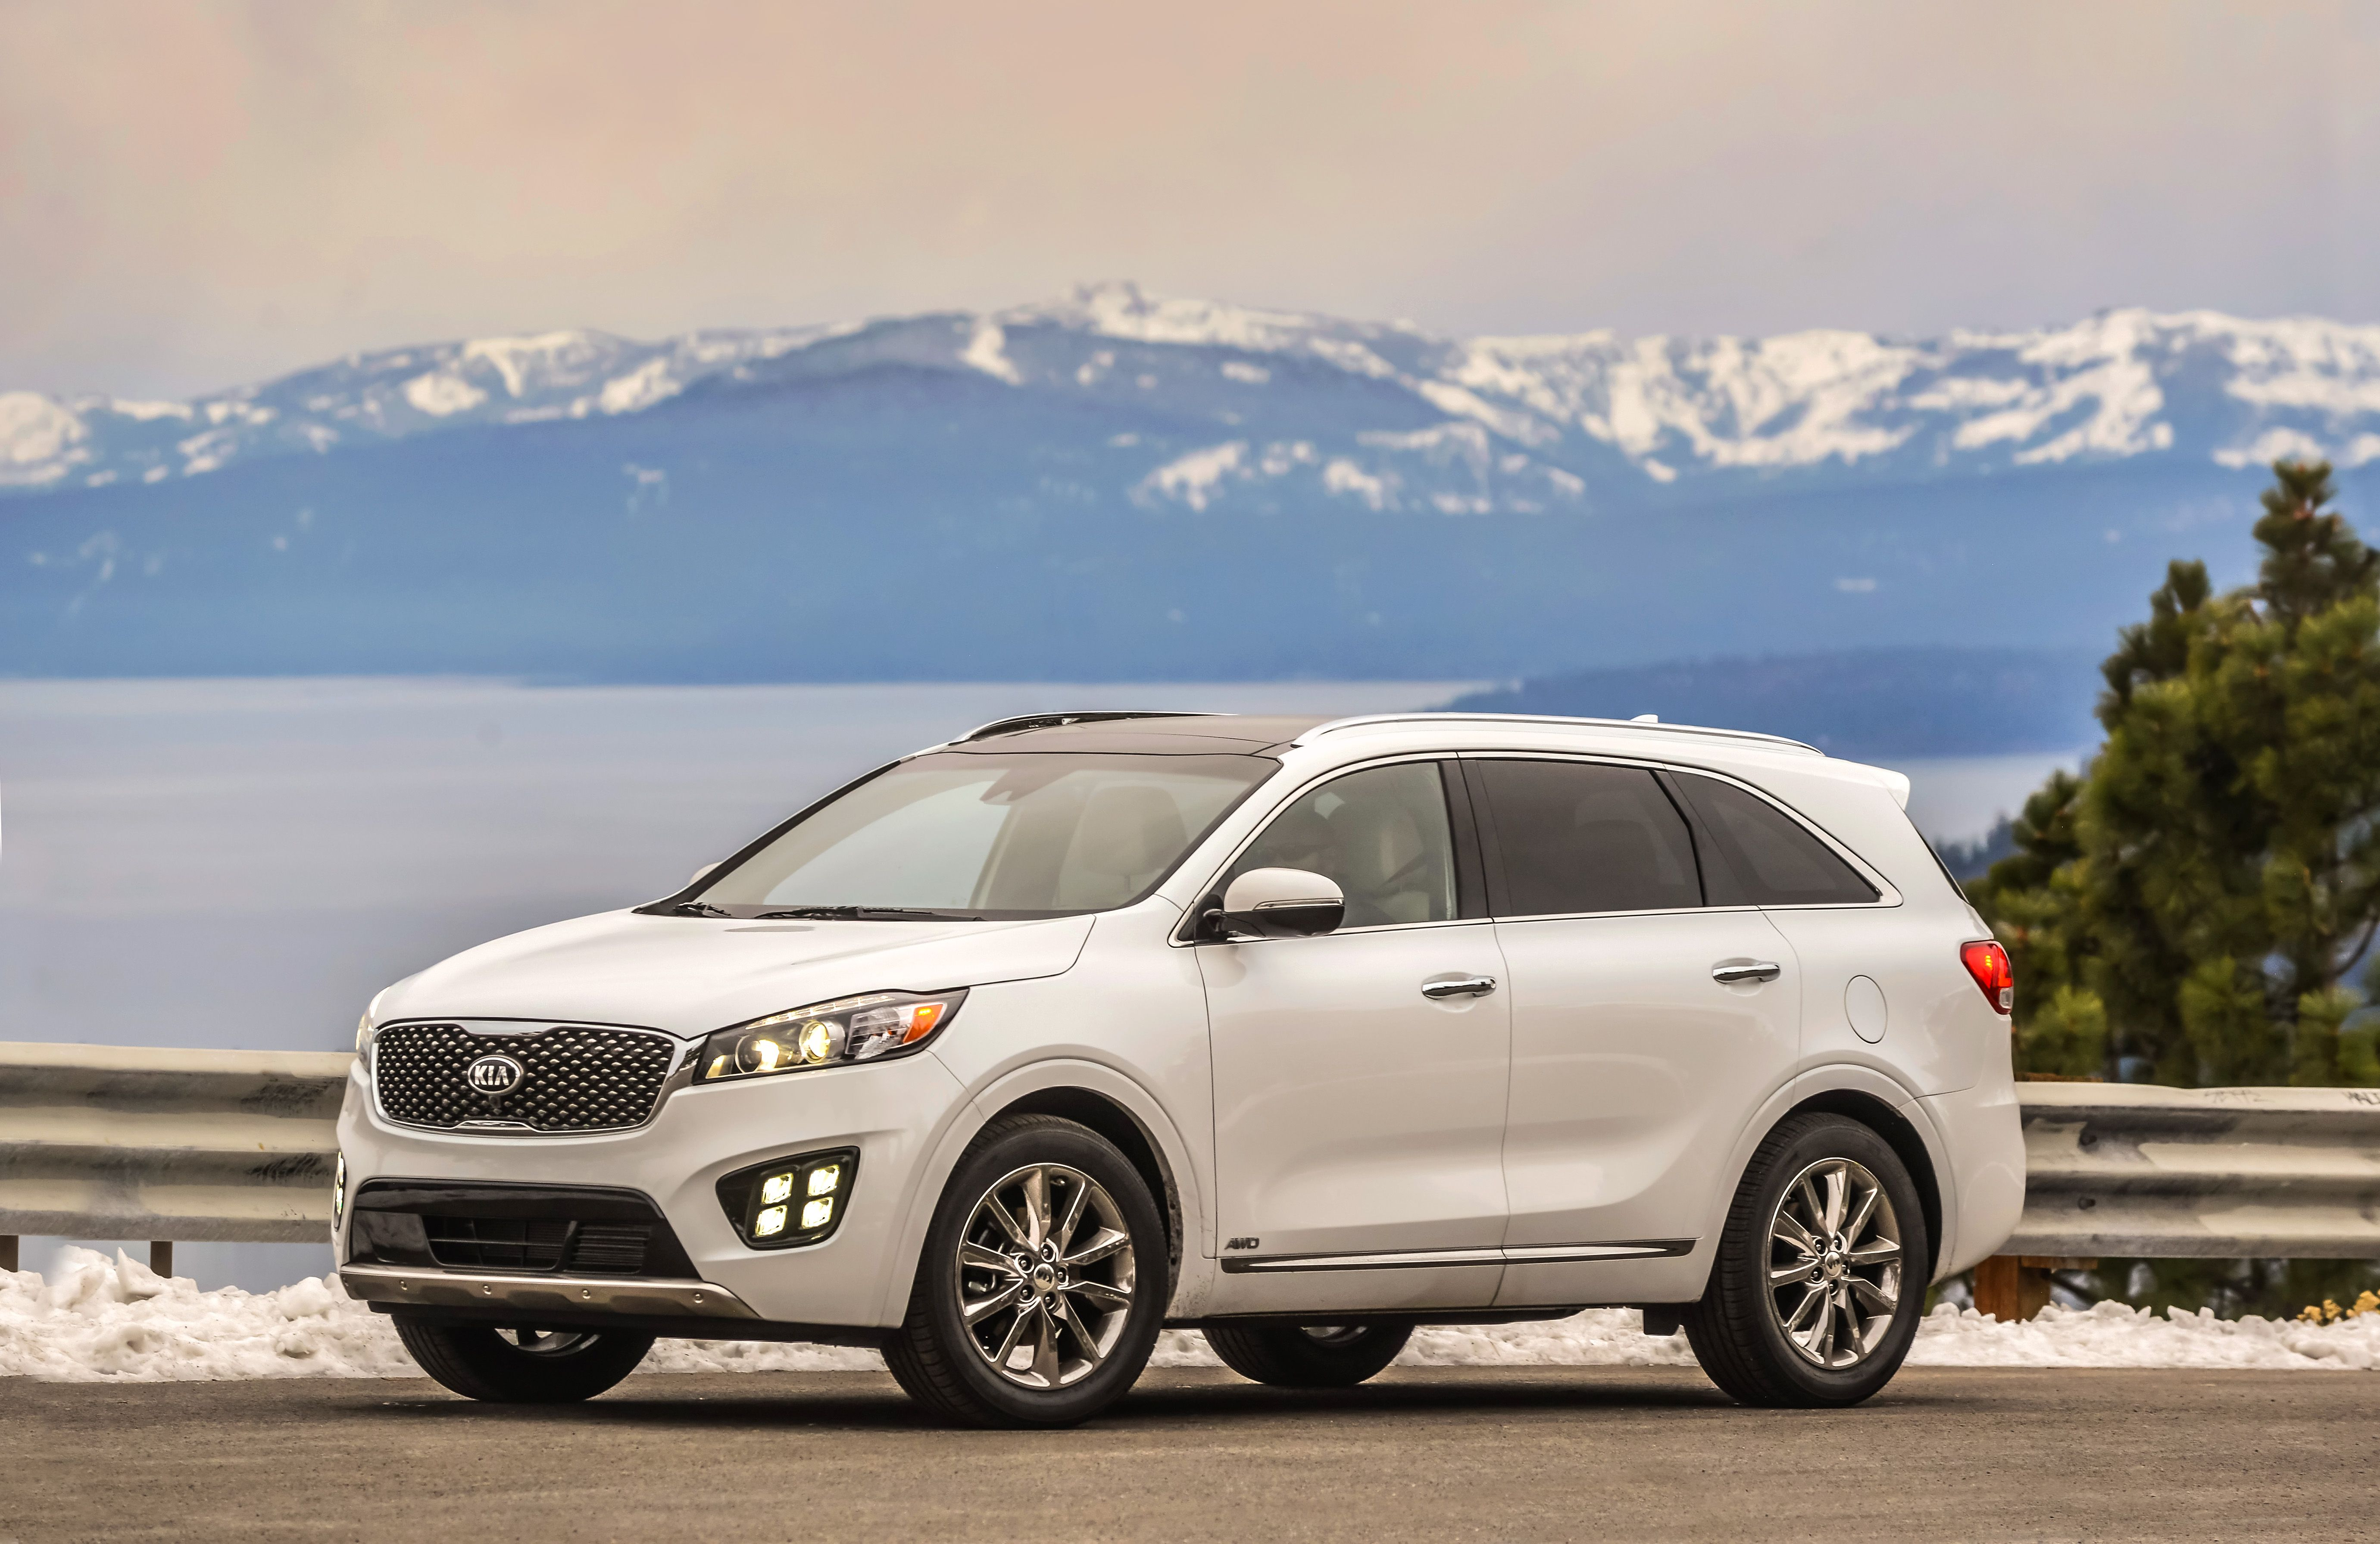 Kia Sorento 2016 HD wallpapers free download